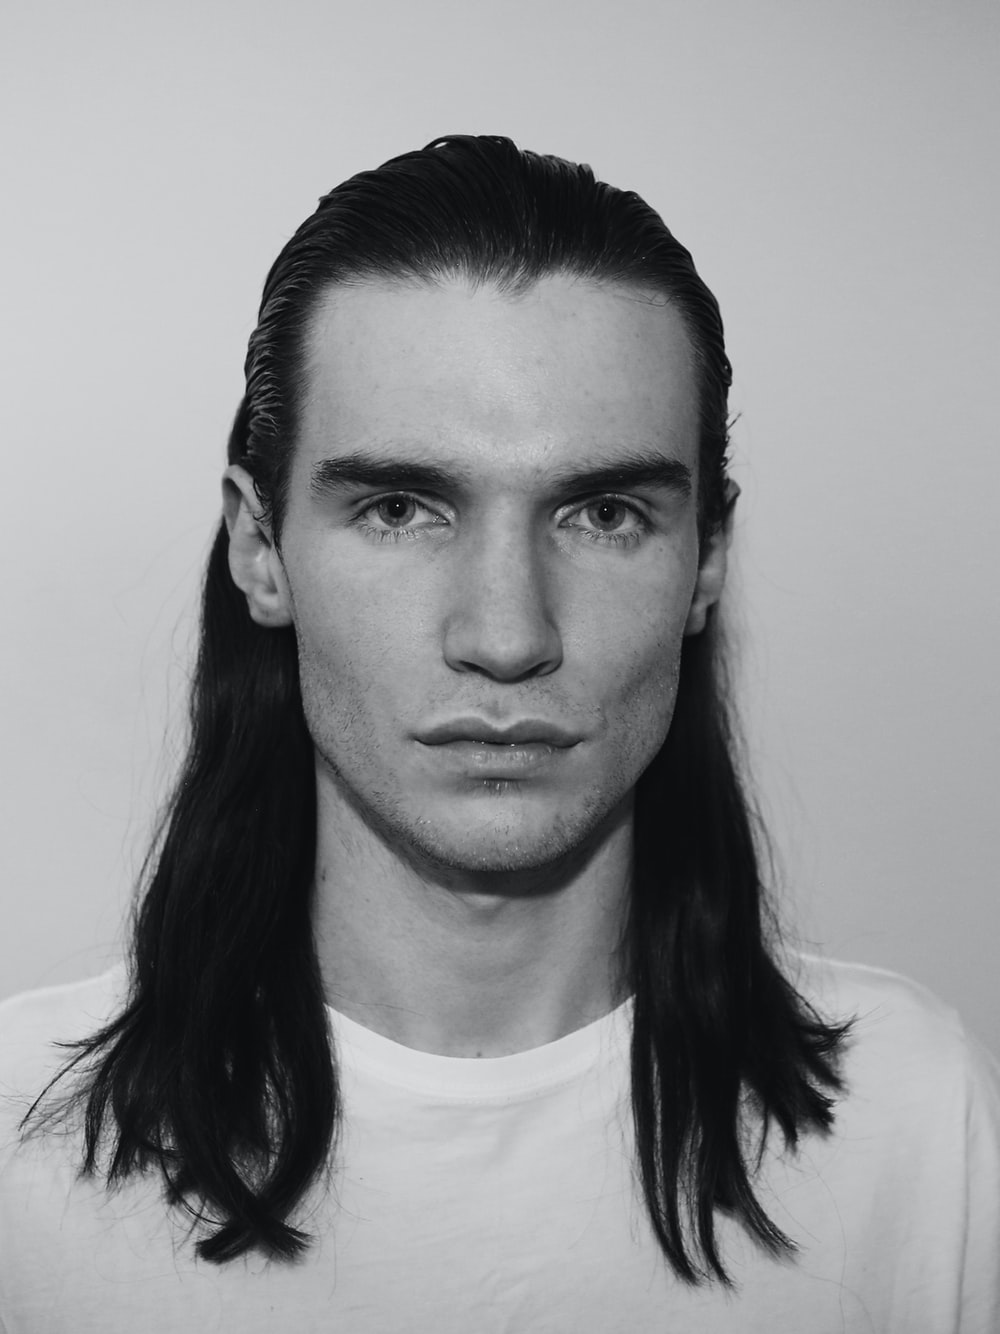 Pictures of men with long hair